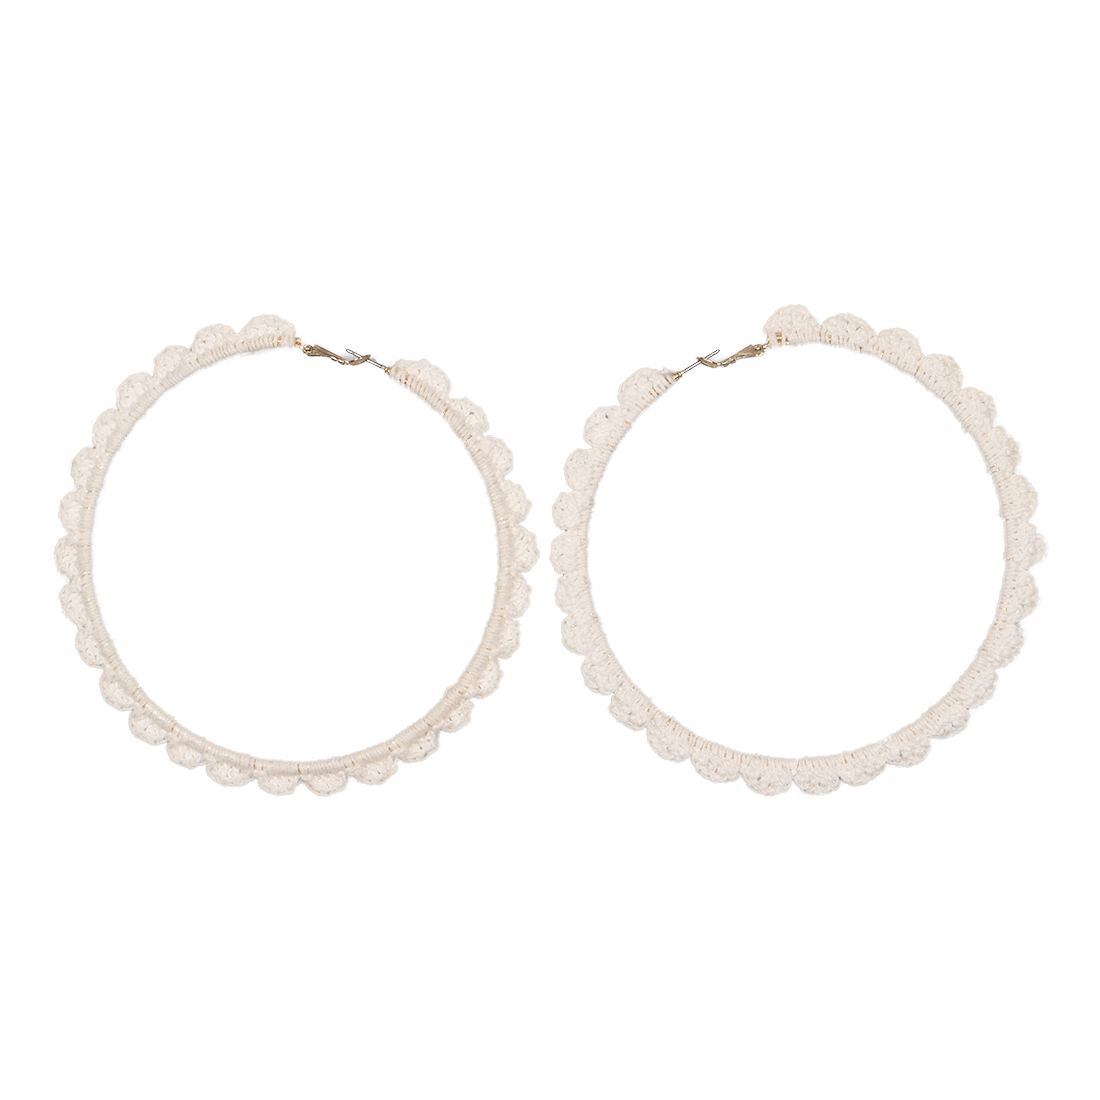 Crocheted hoop earrings white